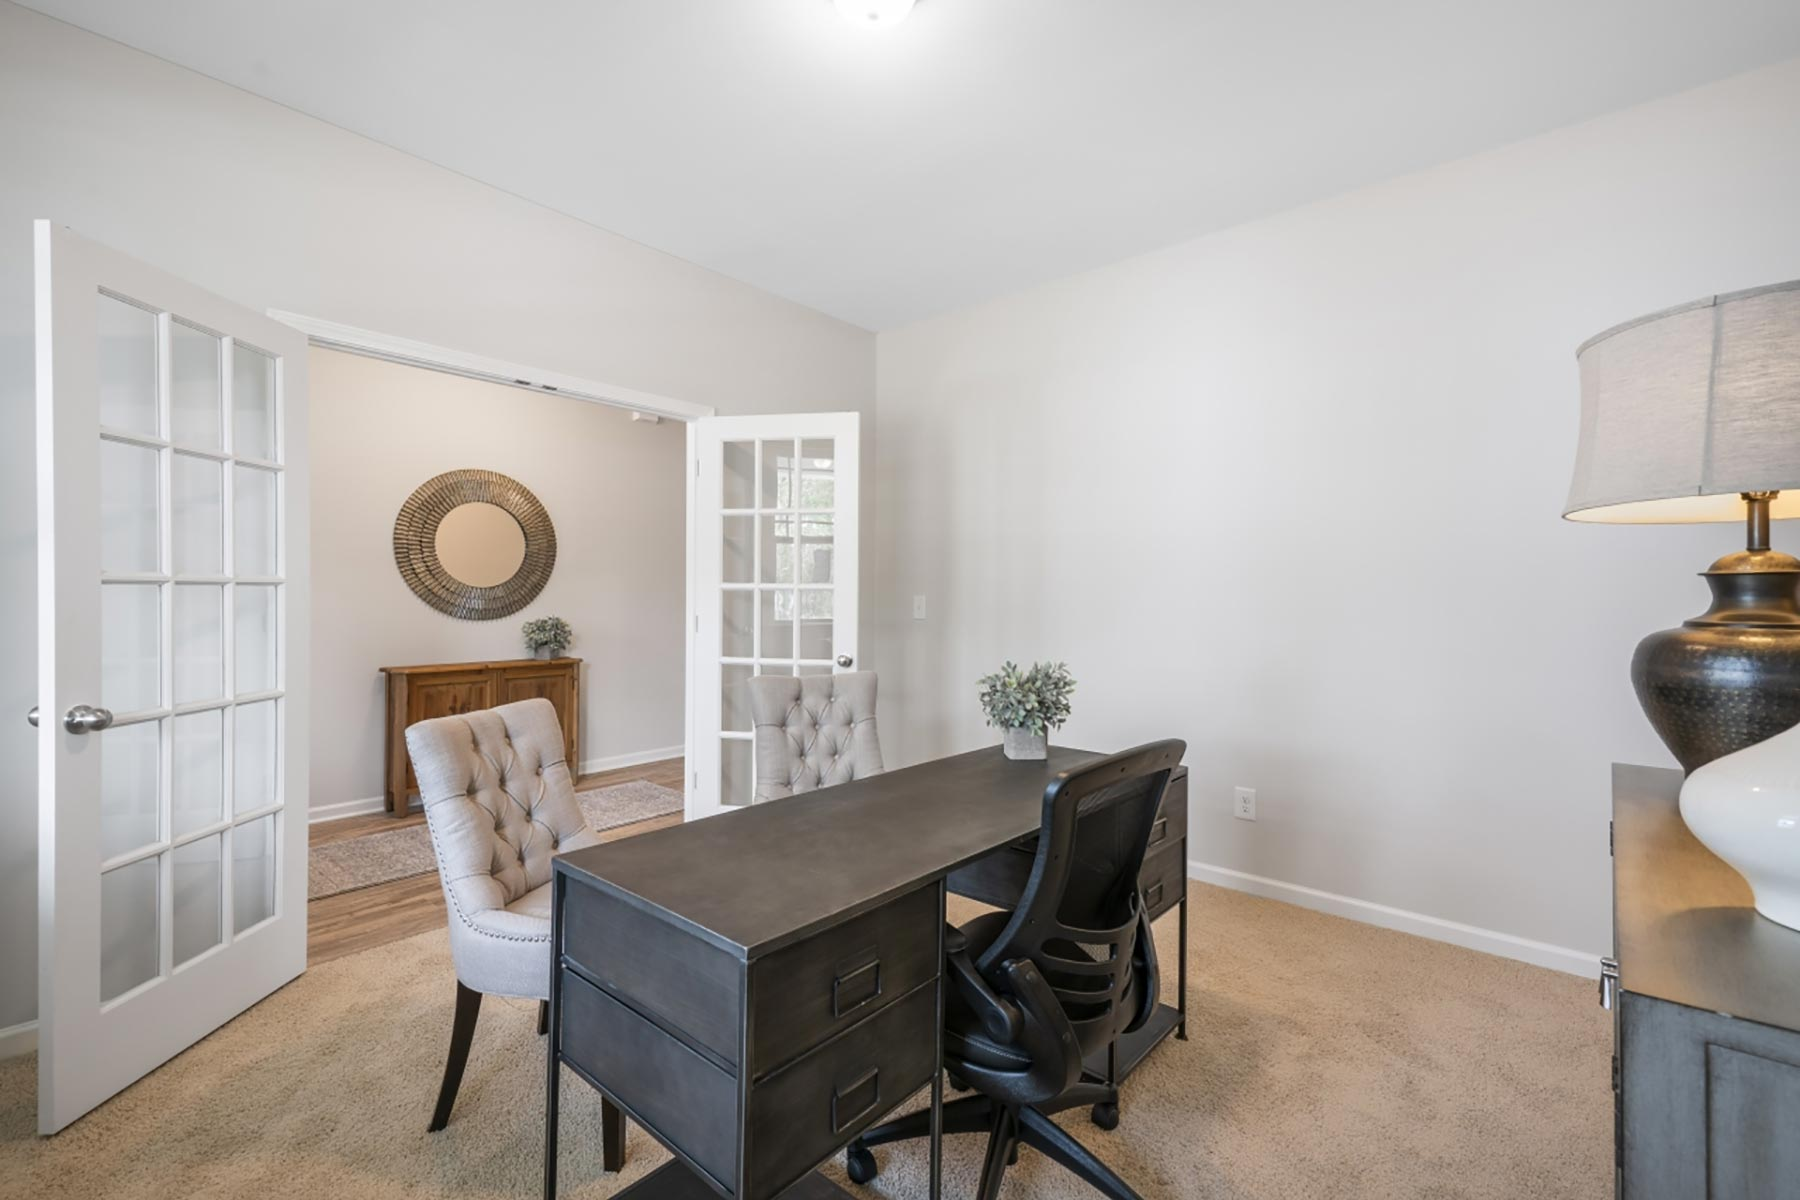 Evelyn Plan Study Room at Bedford at Flowers Plantation in Clayton North Carolina by Mattamy Homes